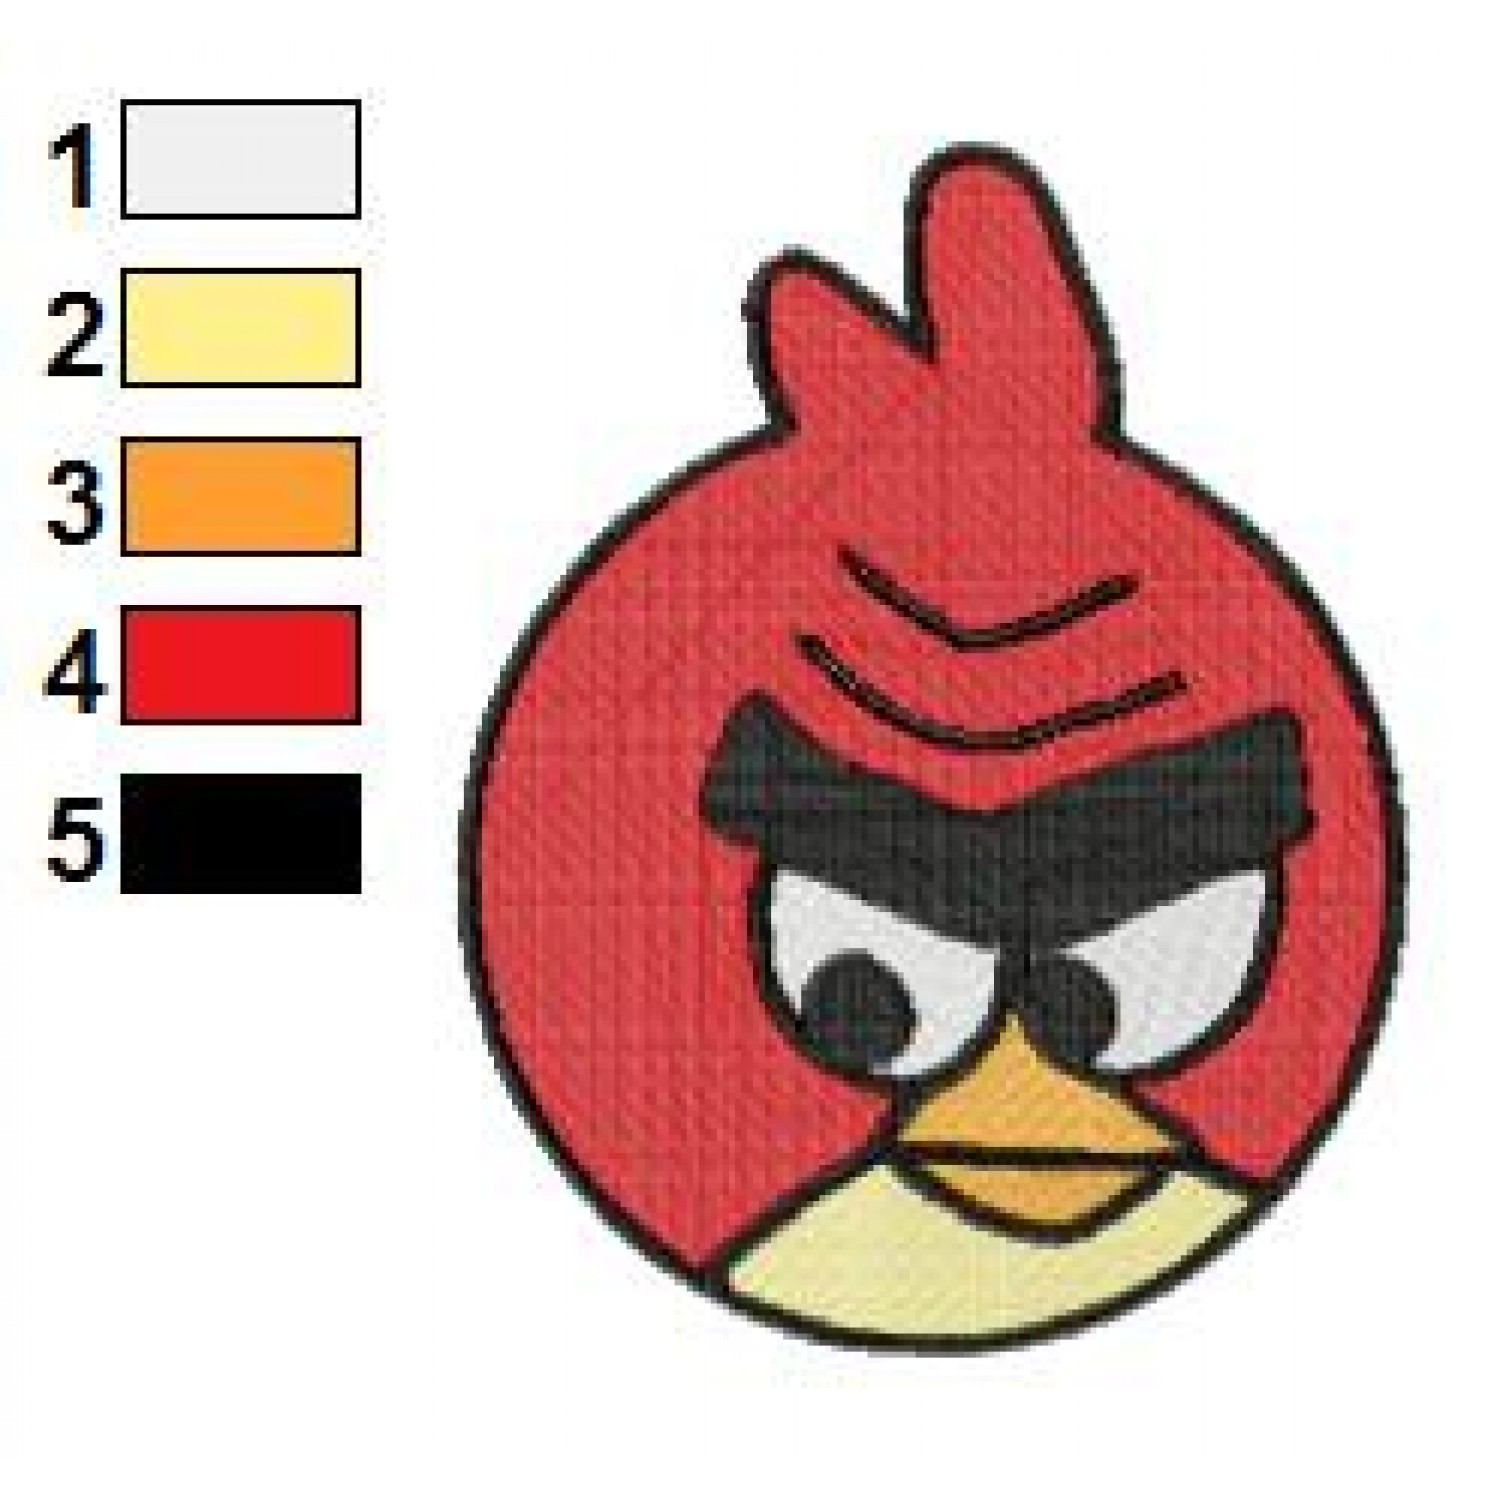 Angry birds space embroidery design 15 for Space embroidery patterns